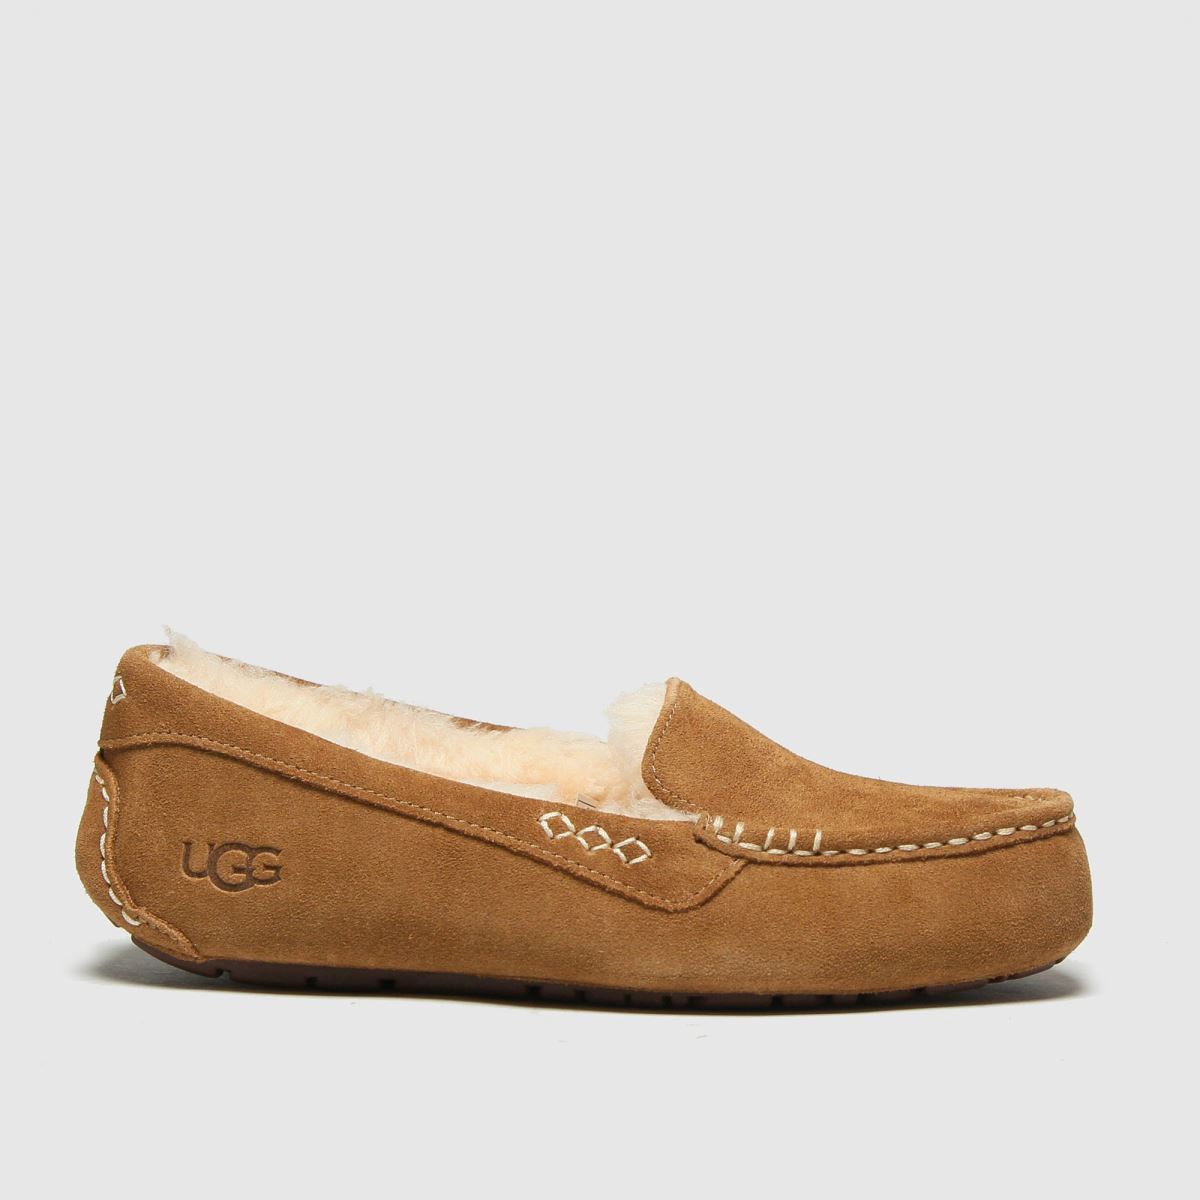 UGG Tan Ansley Slippers